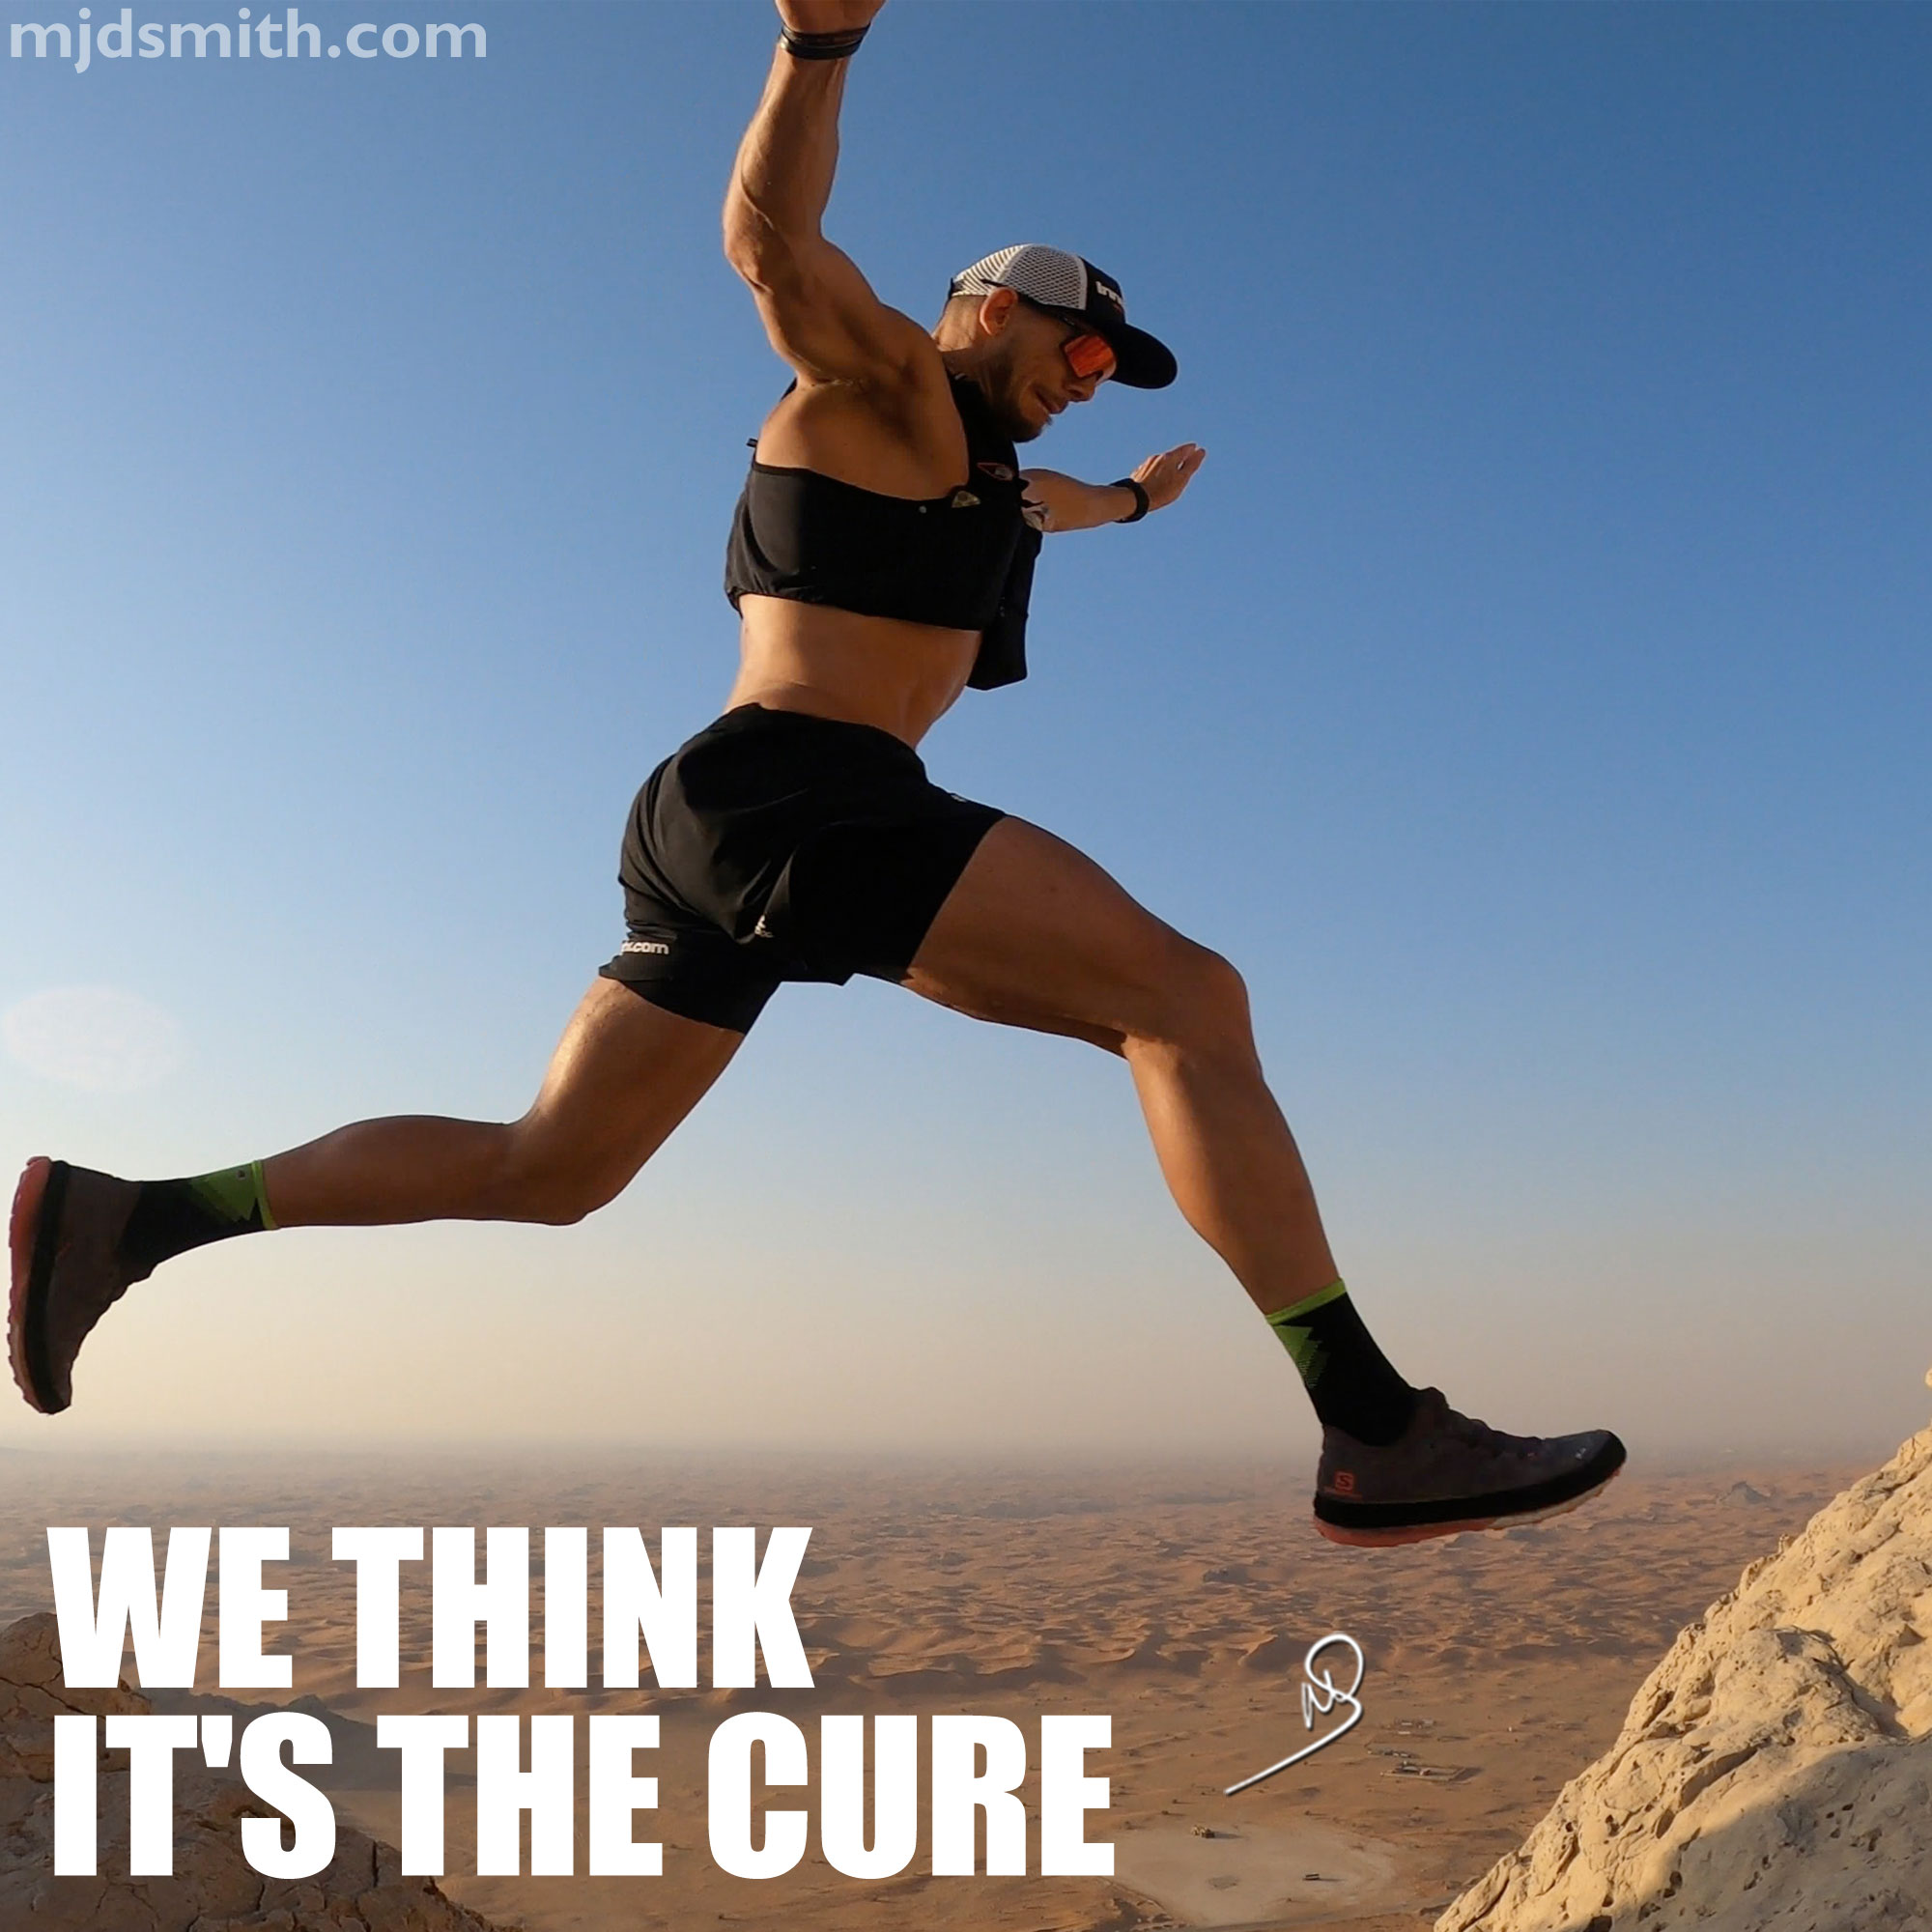 We think it's the cure